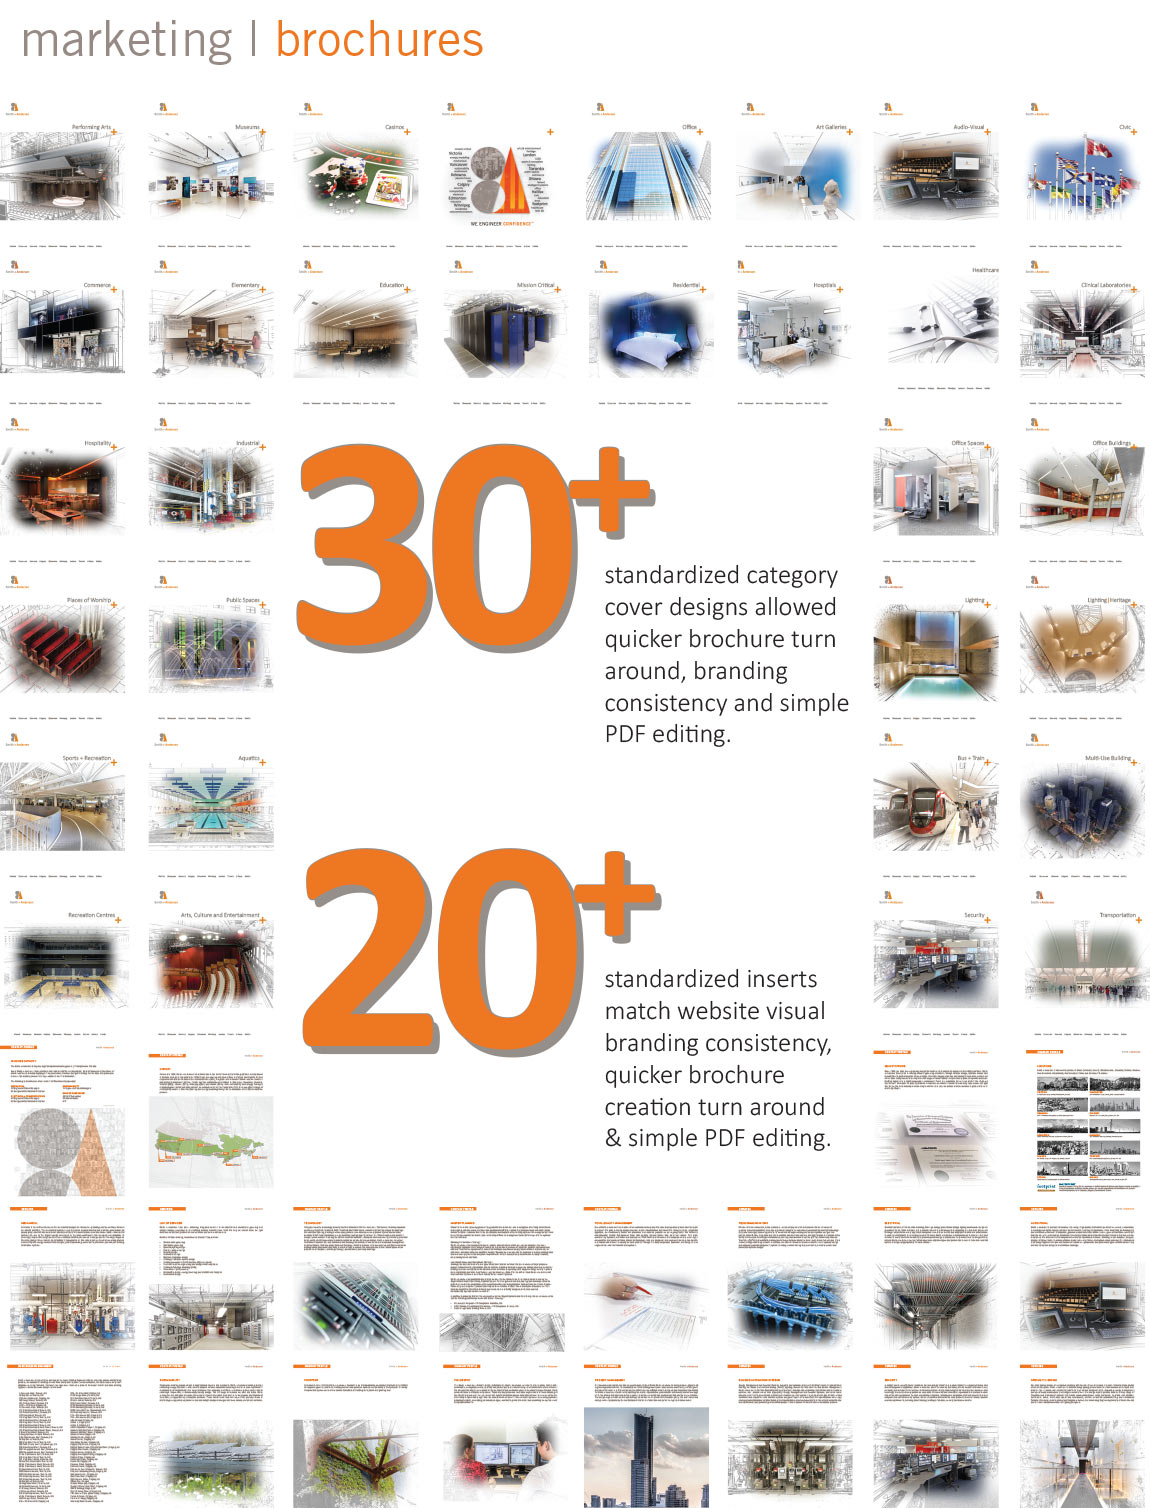 Brochure covers infographic